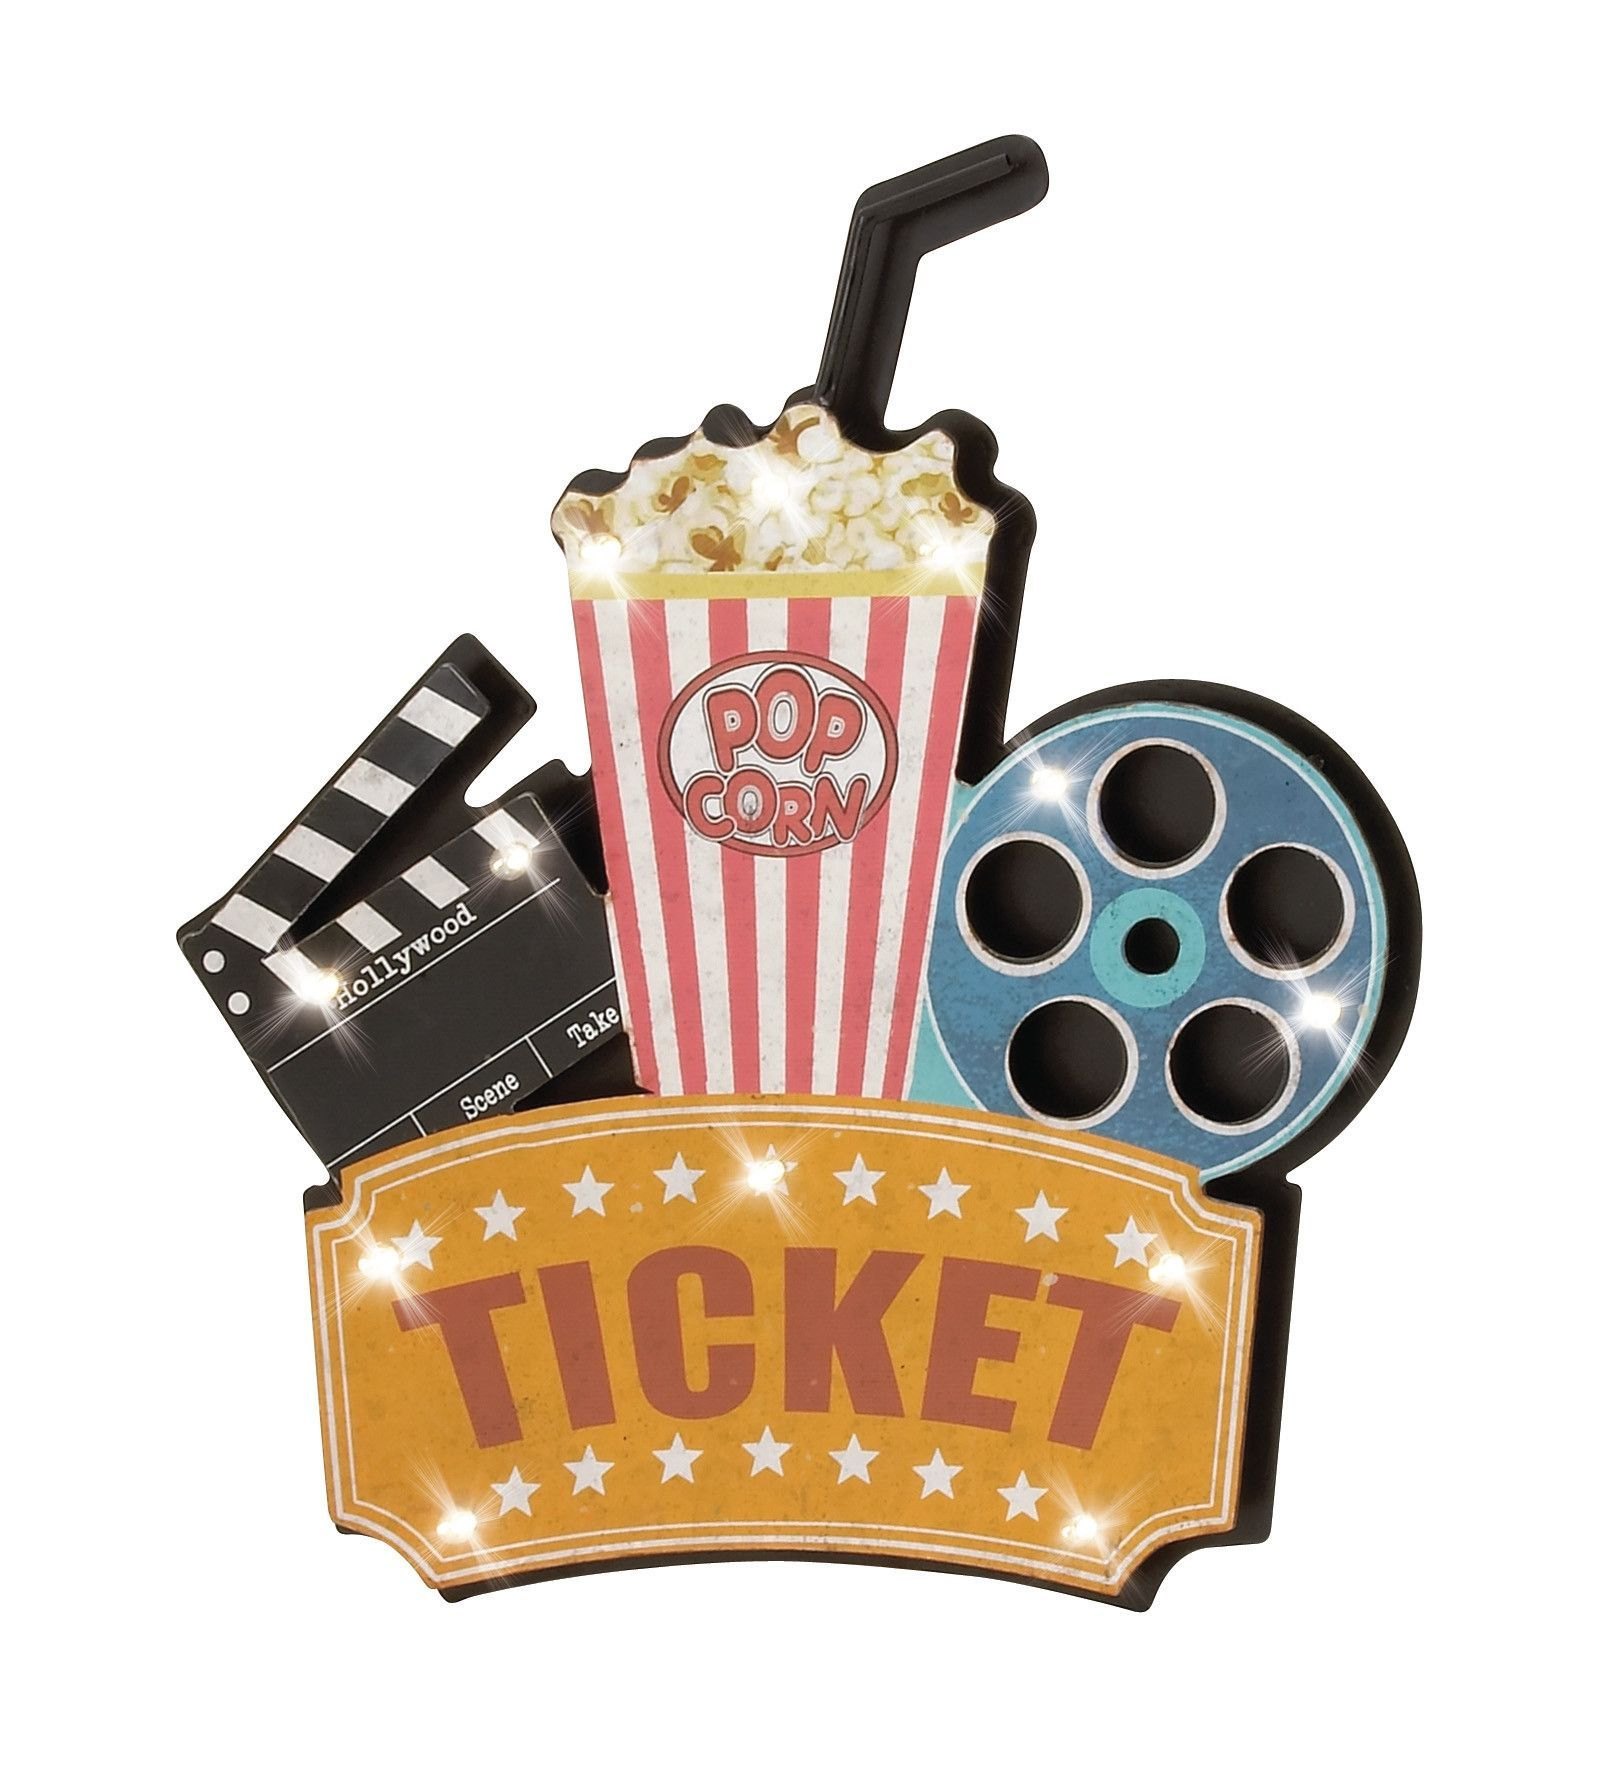 Movie Reel Wall Decor ticket movie reel clapperboard led light wall decor hollywood